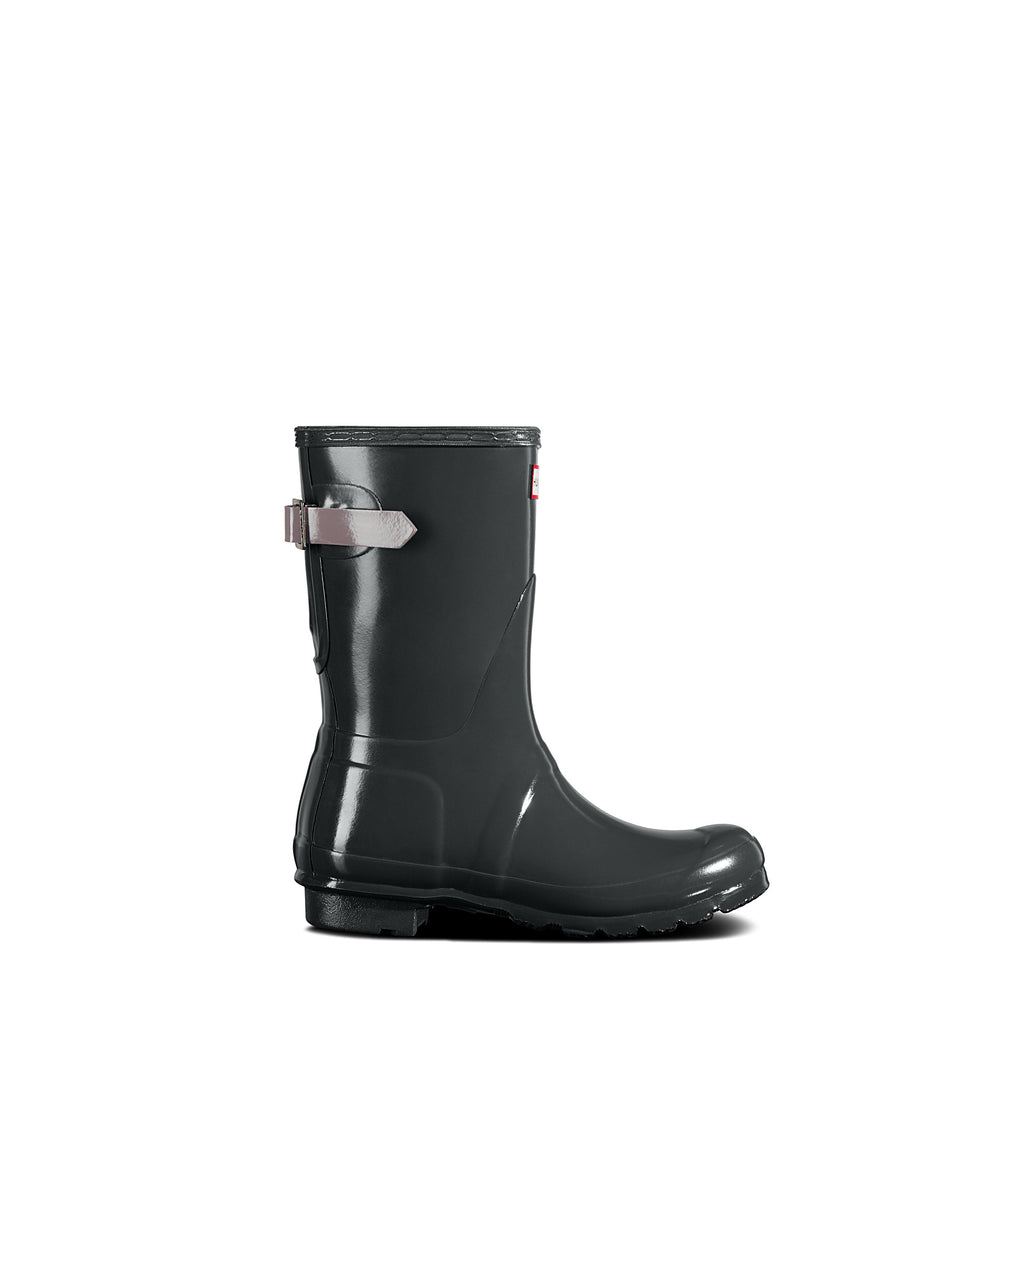 Black Original Back Adjustable Short Boots